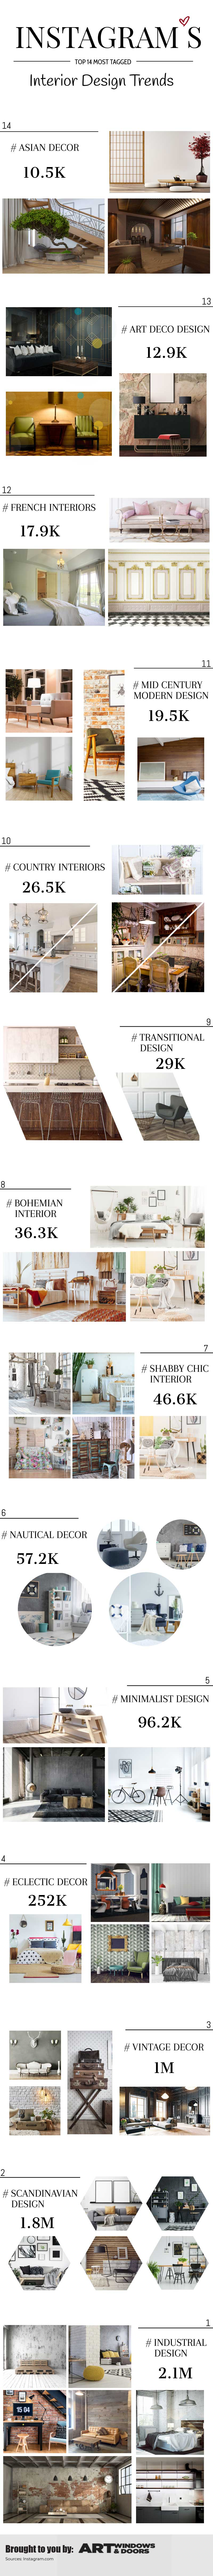 Instagram S Top 14 Most Tagged Interior Design Trends Art Windows And Doors